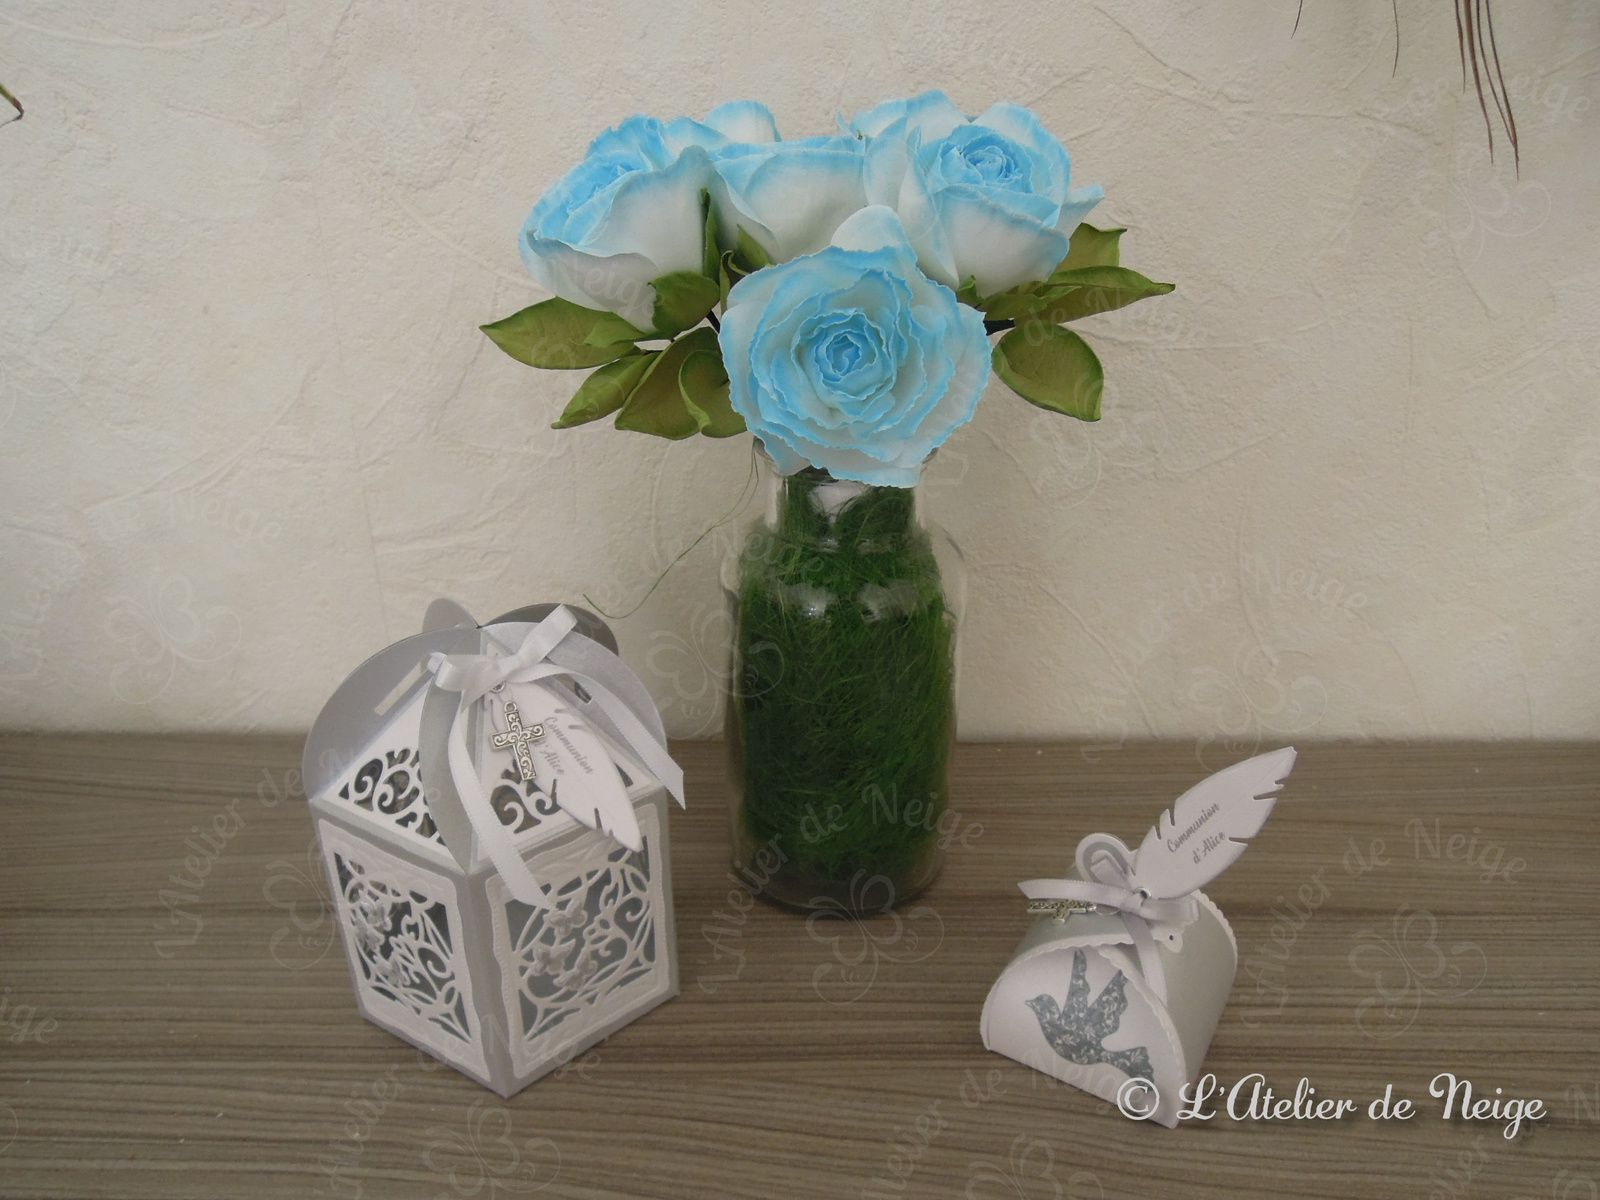 059 - Bouquet de Roses Bleues et Blanches Communion Alice 11 avril 2021